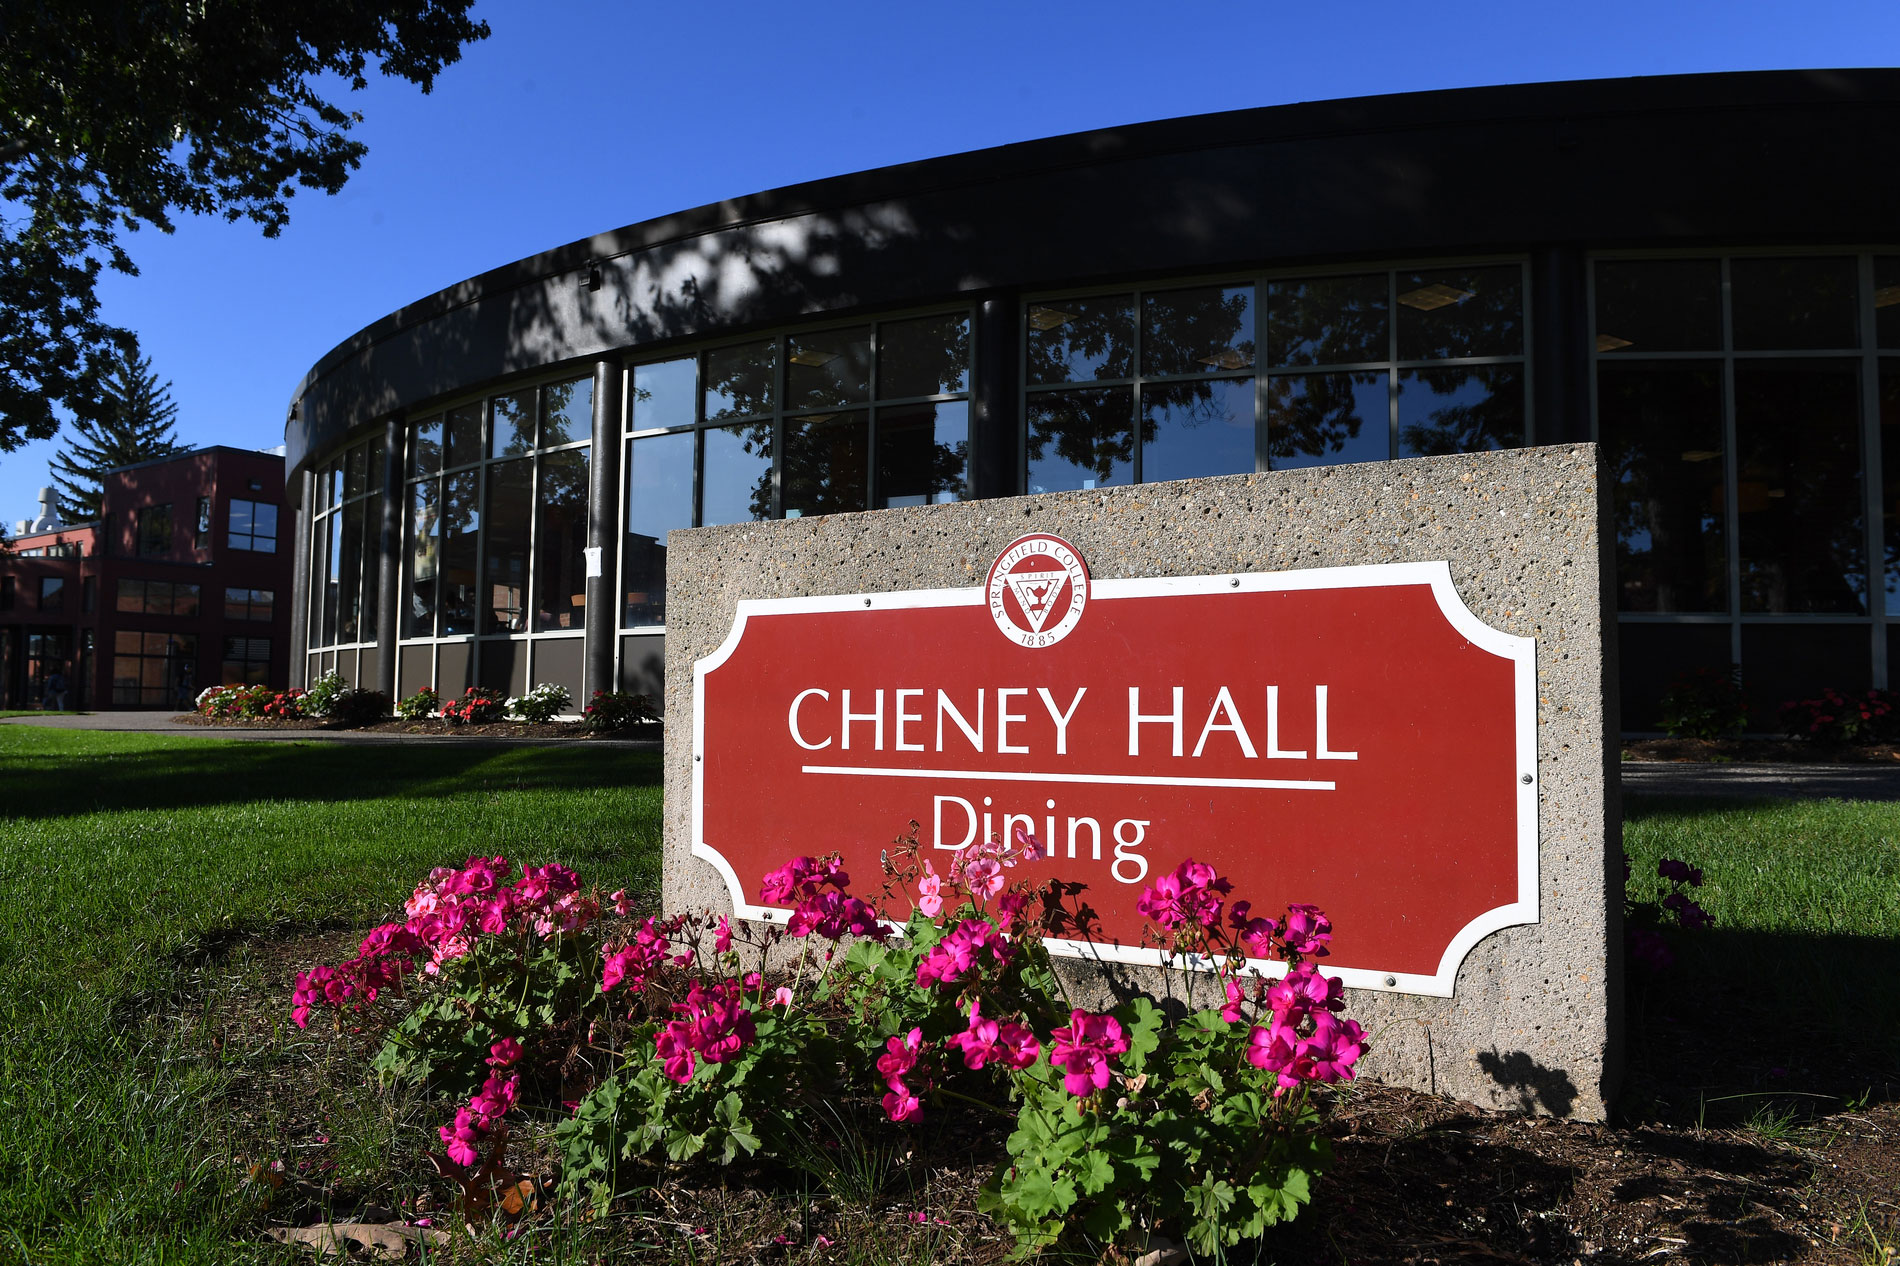 Springfield College Dining Services is proud to announce it has partnered with Harvest Table Culinary Group for its hospitality and dining services.